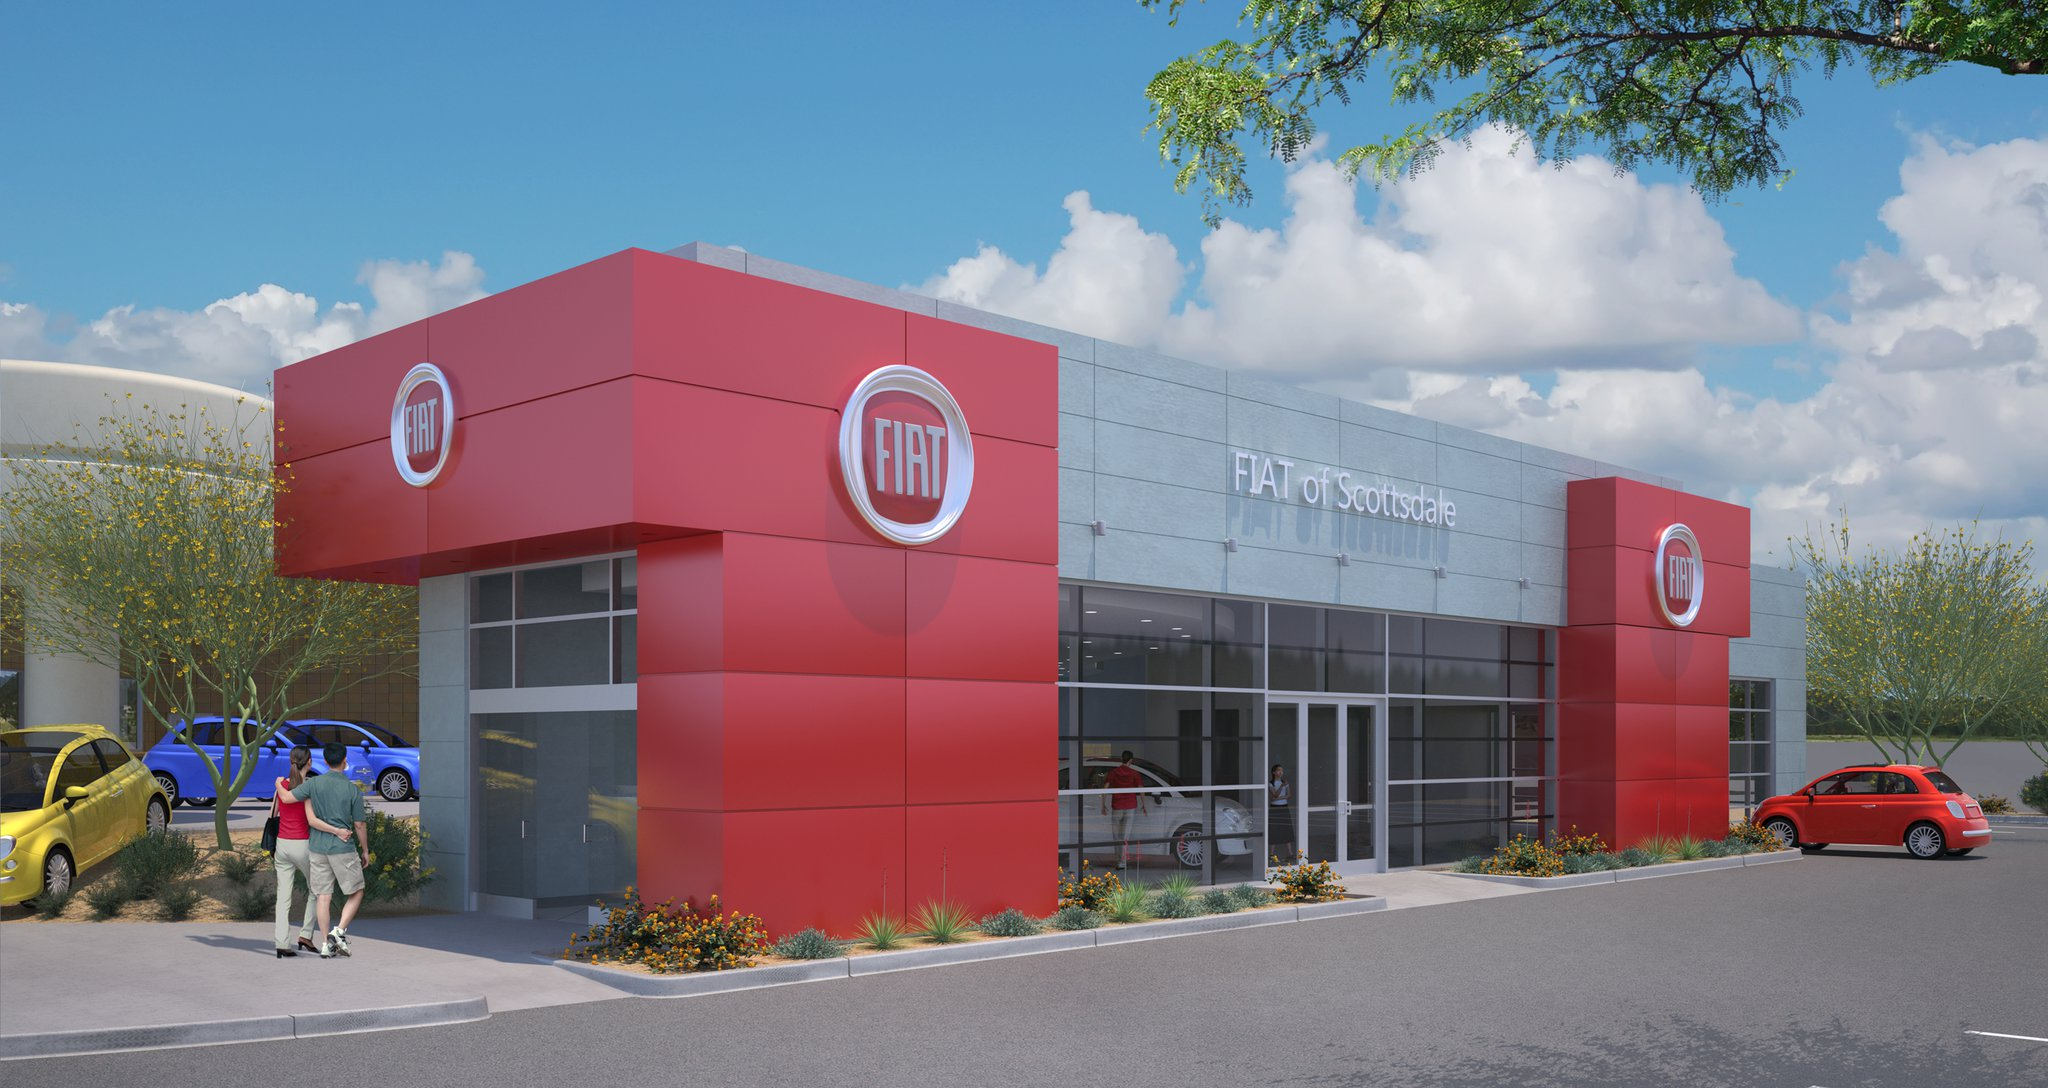 fiat of scottsdale | aaron smithey architectural imaging